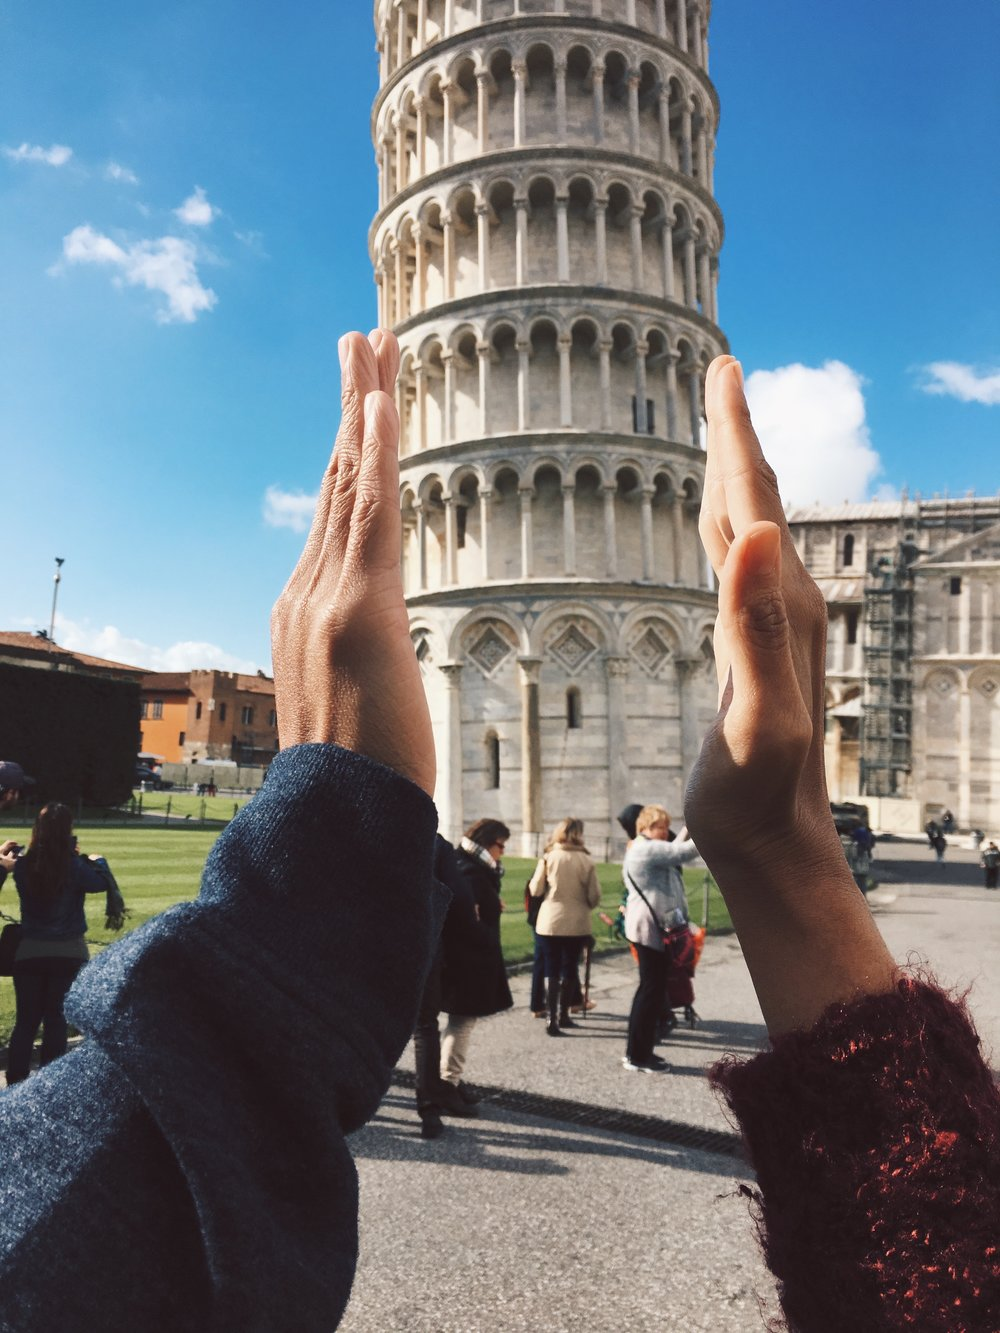 hands-couple-leaning-tower-pisa